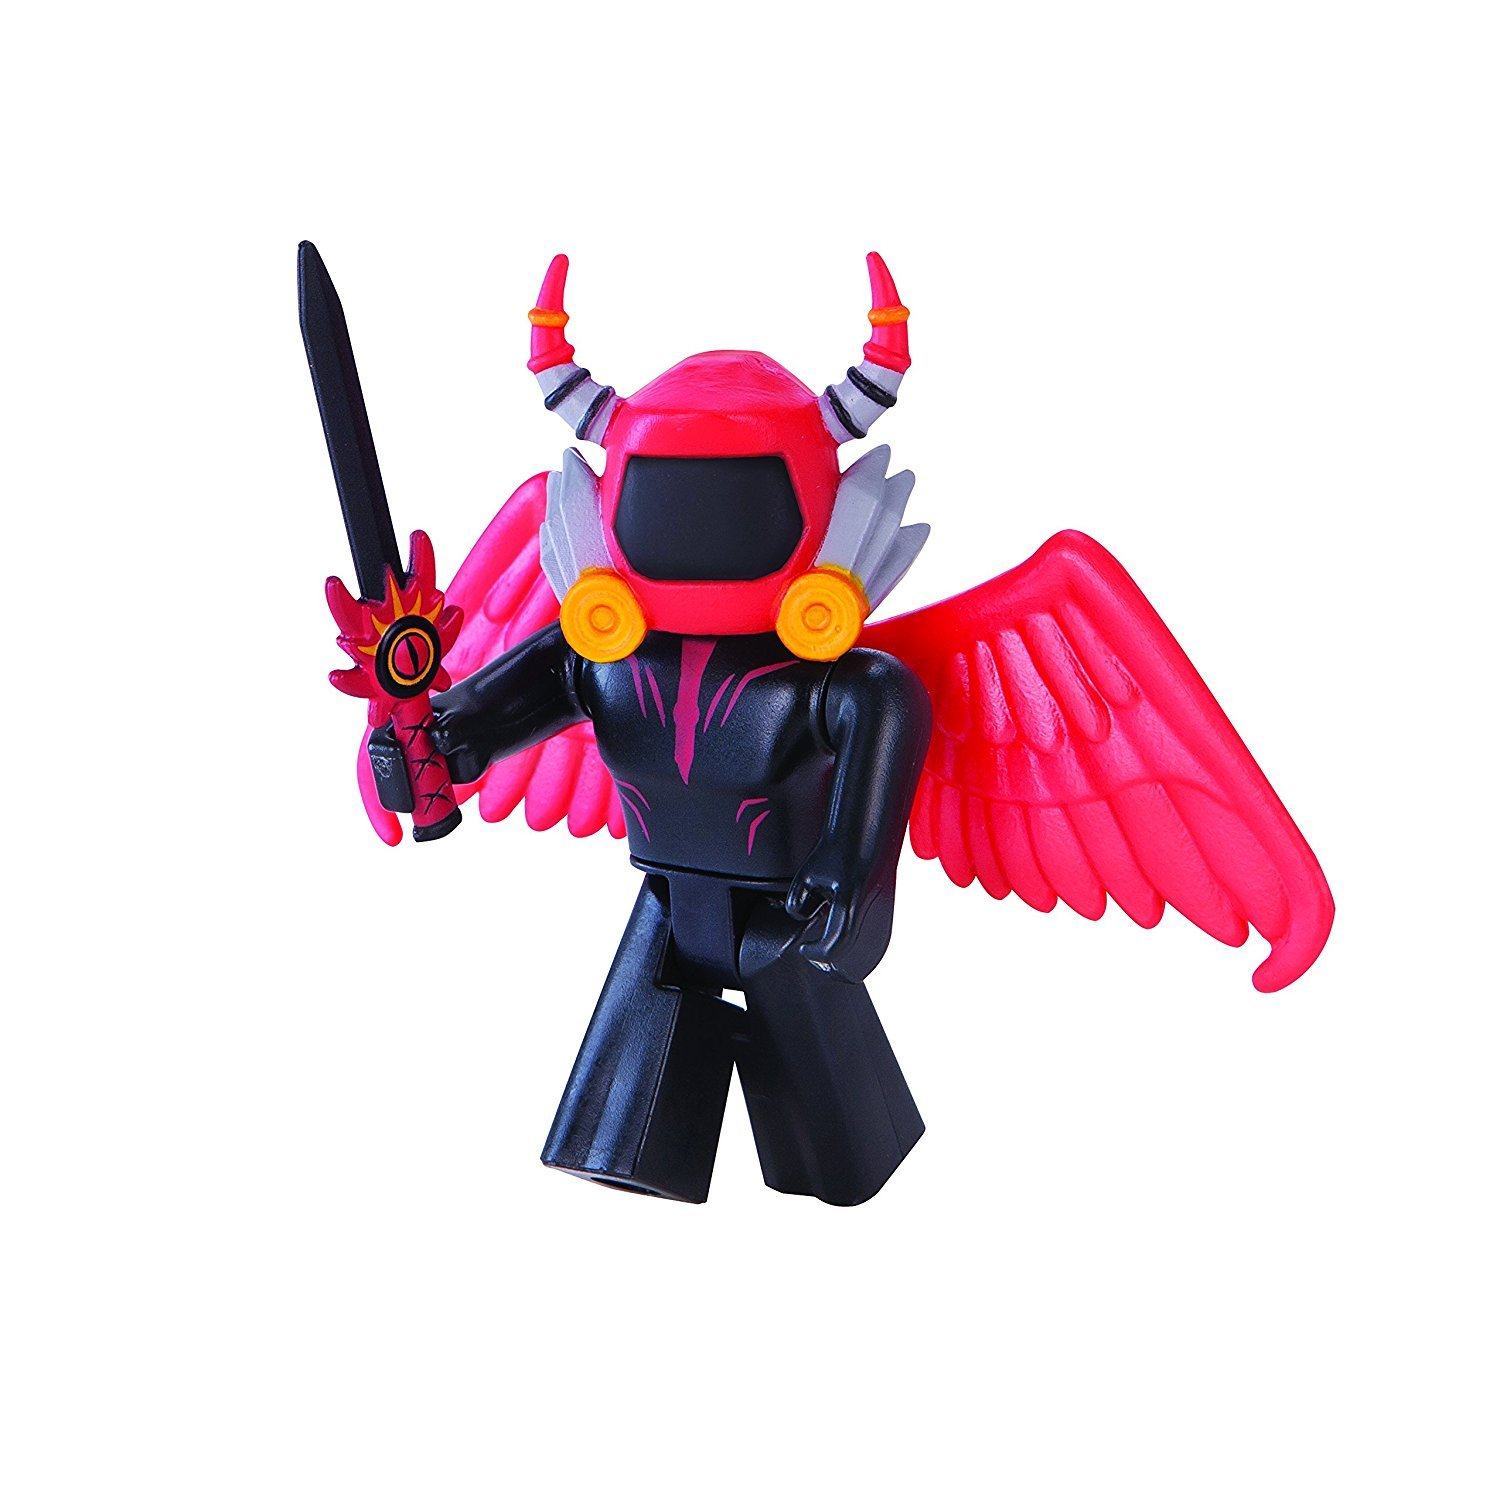 Roblox Toys Pack Lord Umberhallow Mystery Box Series 1 Buy - amazoncom roblox series 4 red brick mystery box toys games